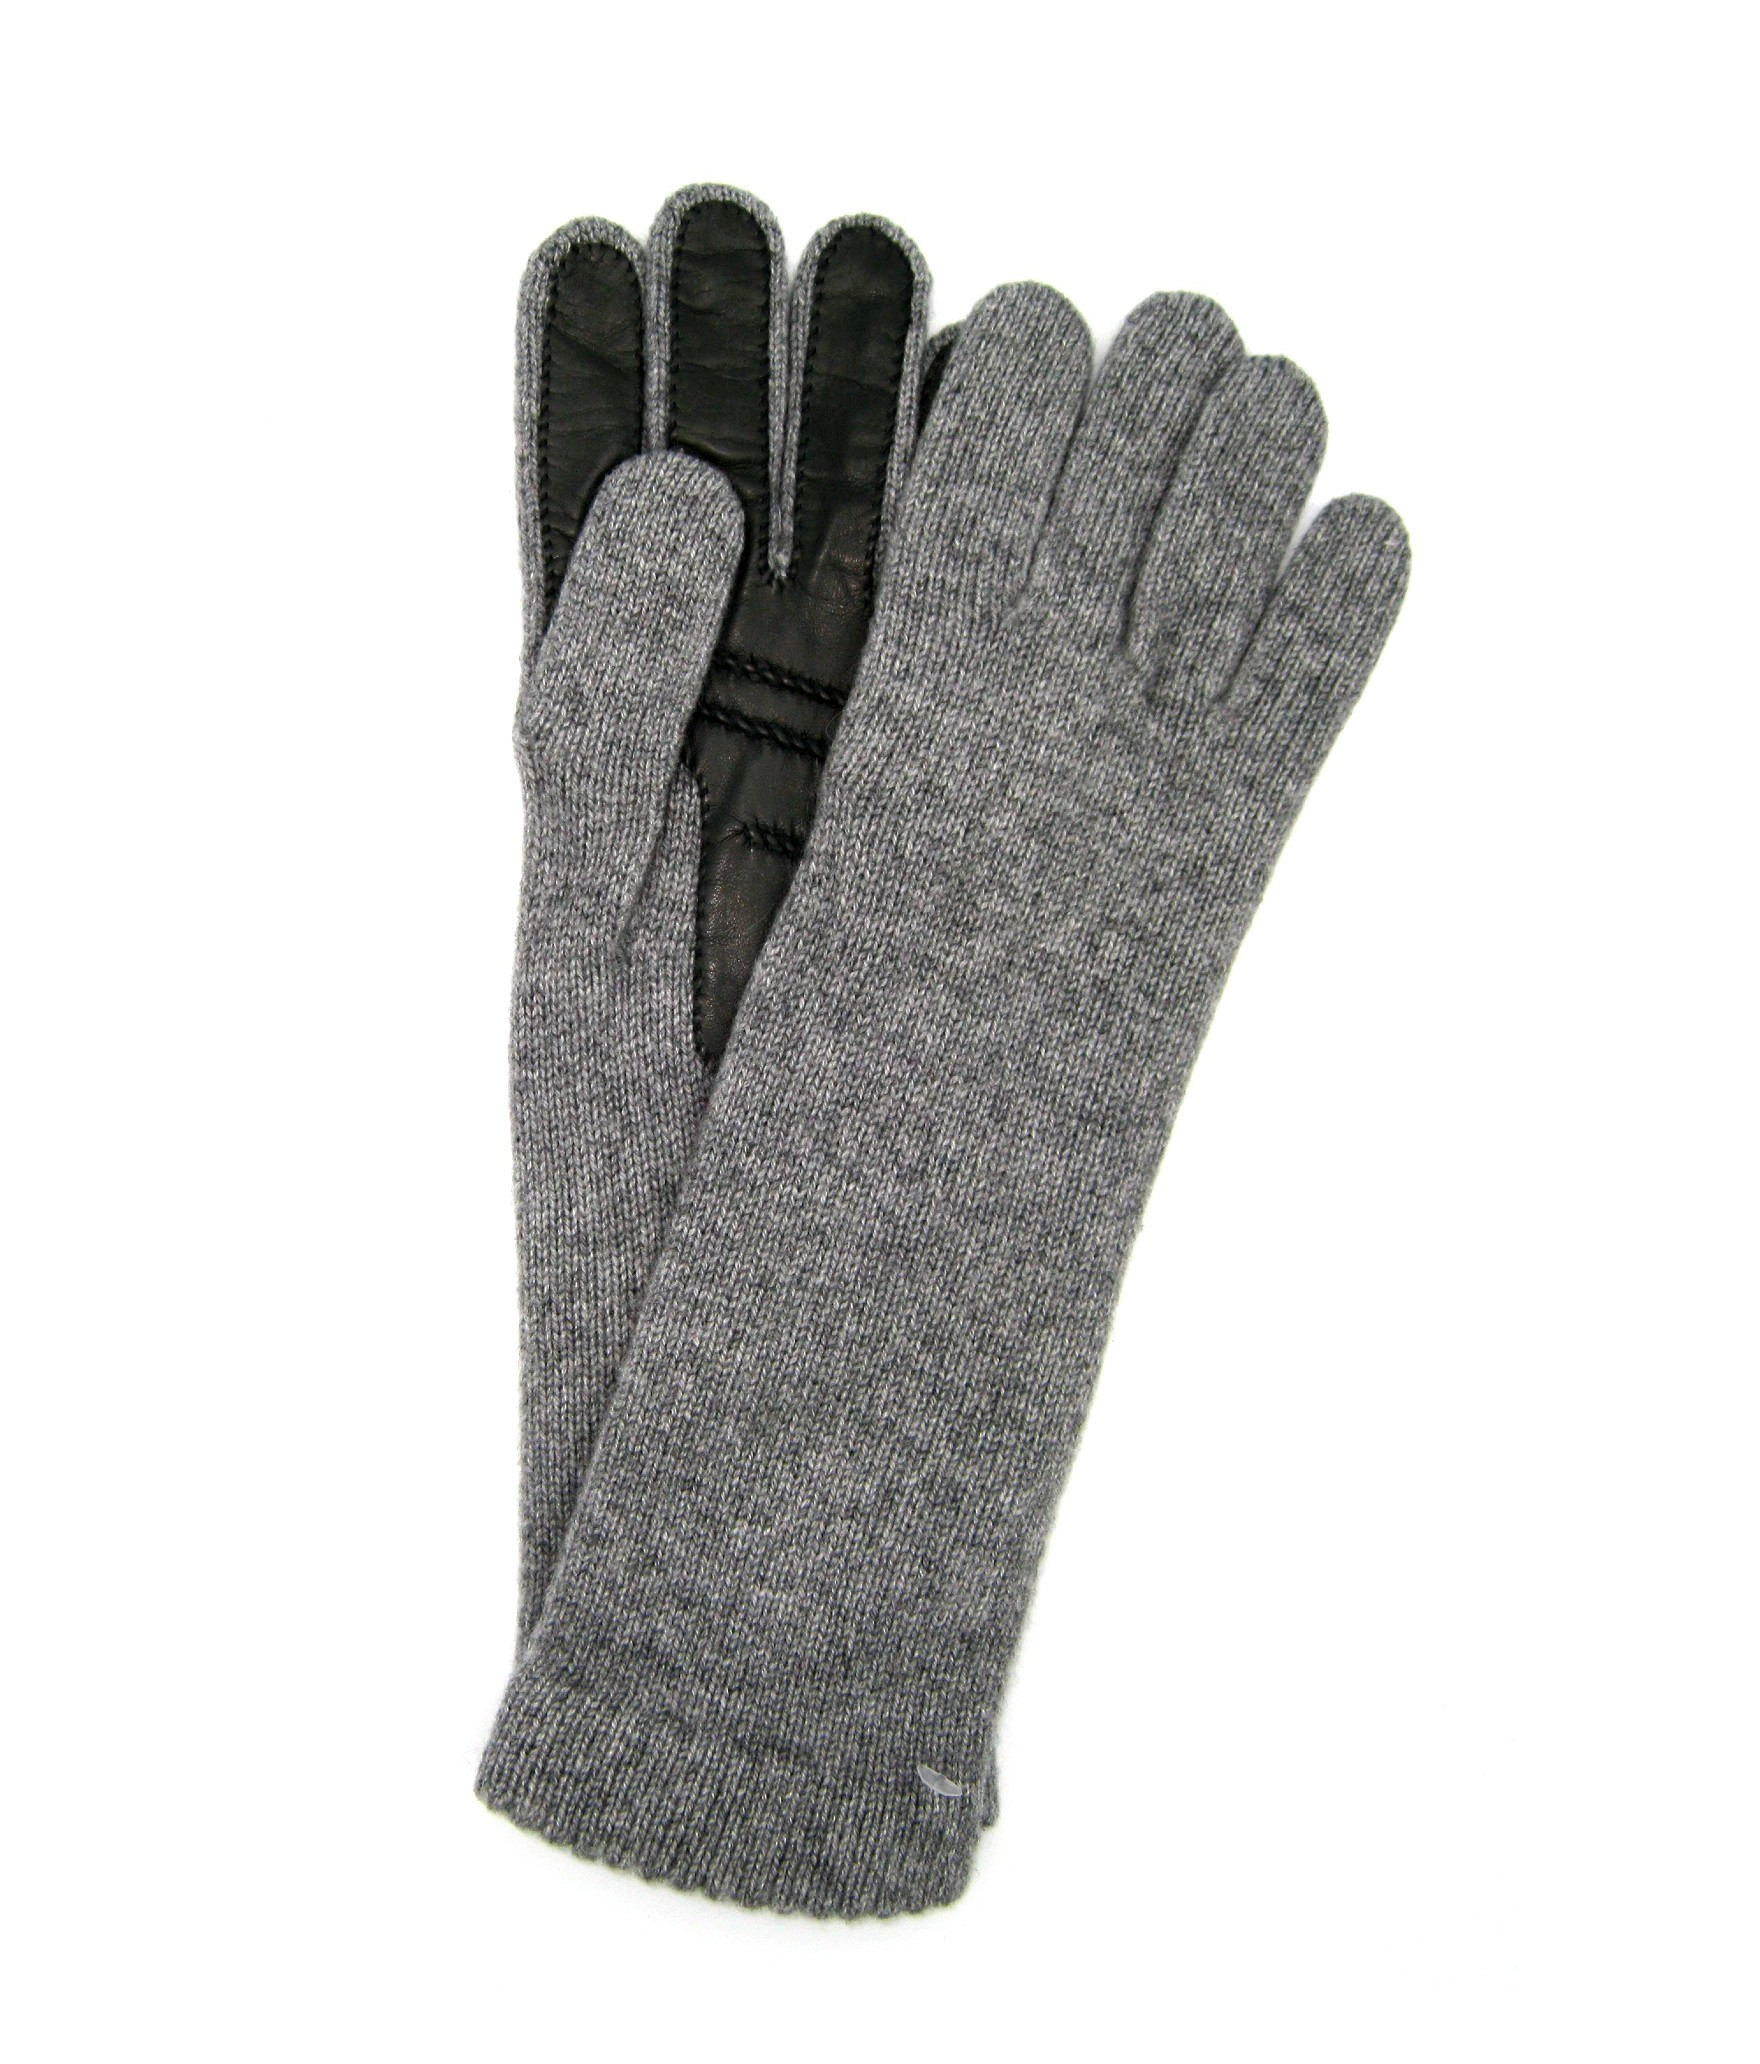 100%cashmere gloves 4BT with Nappa leather palm Light Grey